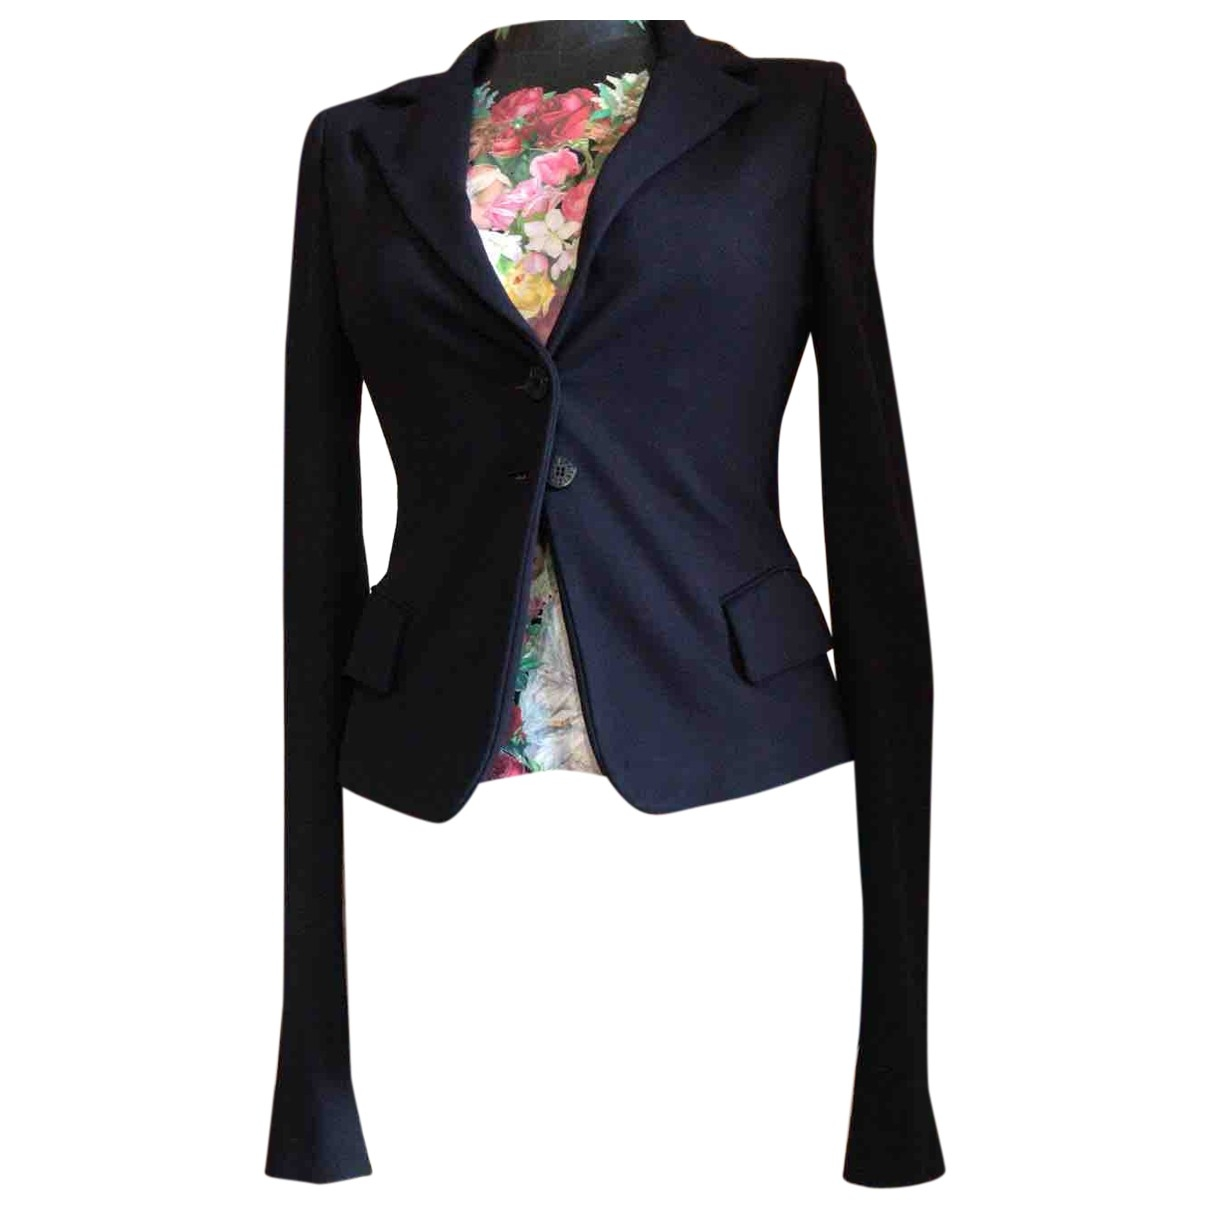 Patrizia Pepe \N Blue Wool jacket for Women 44 IT